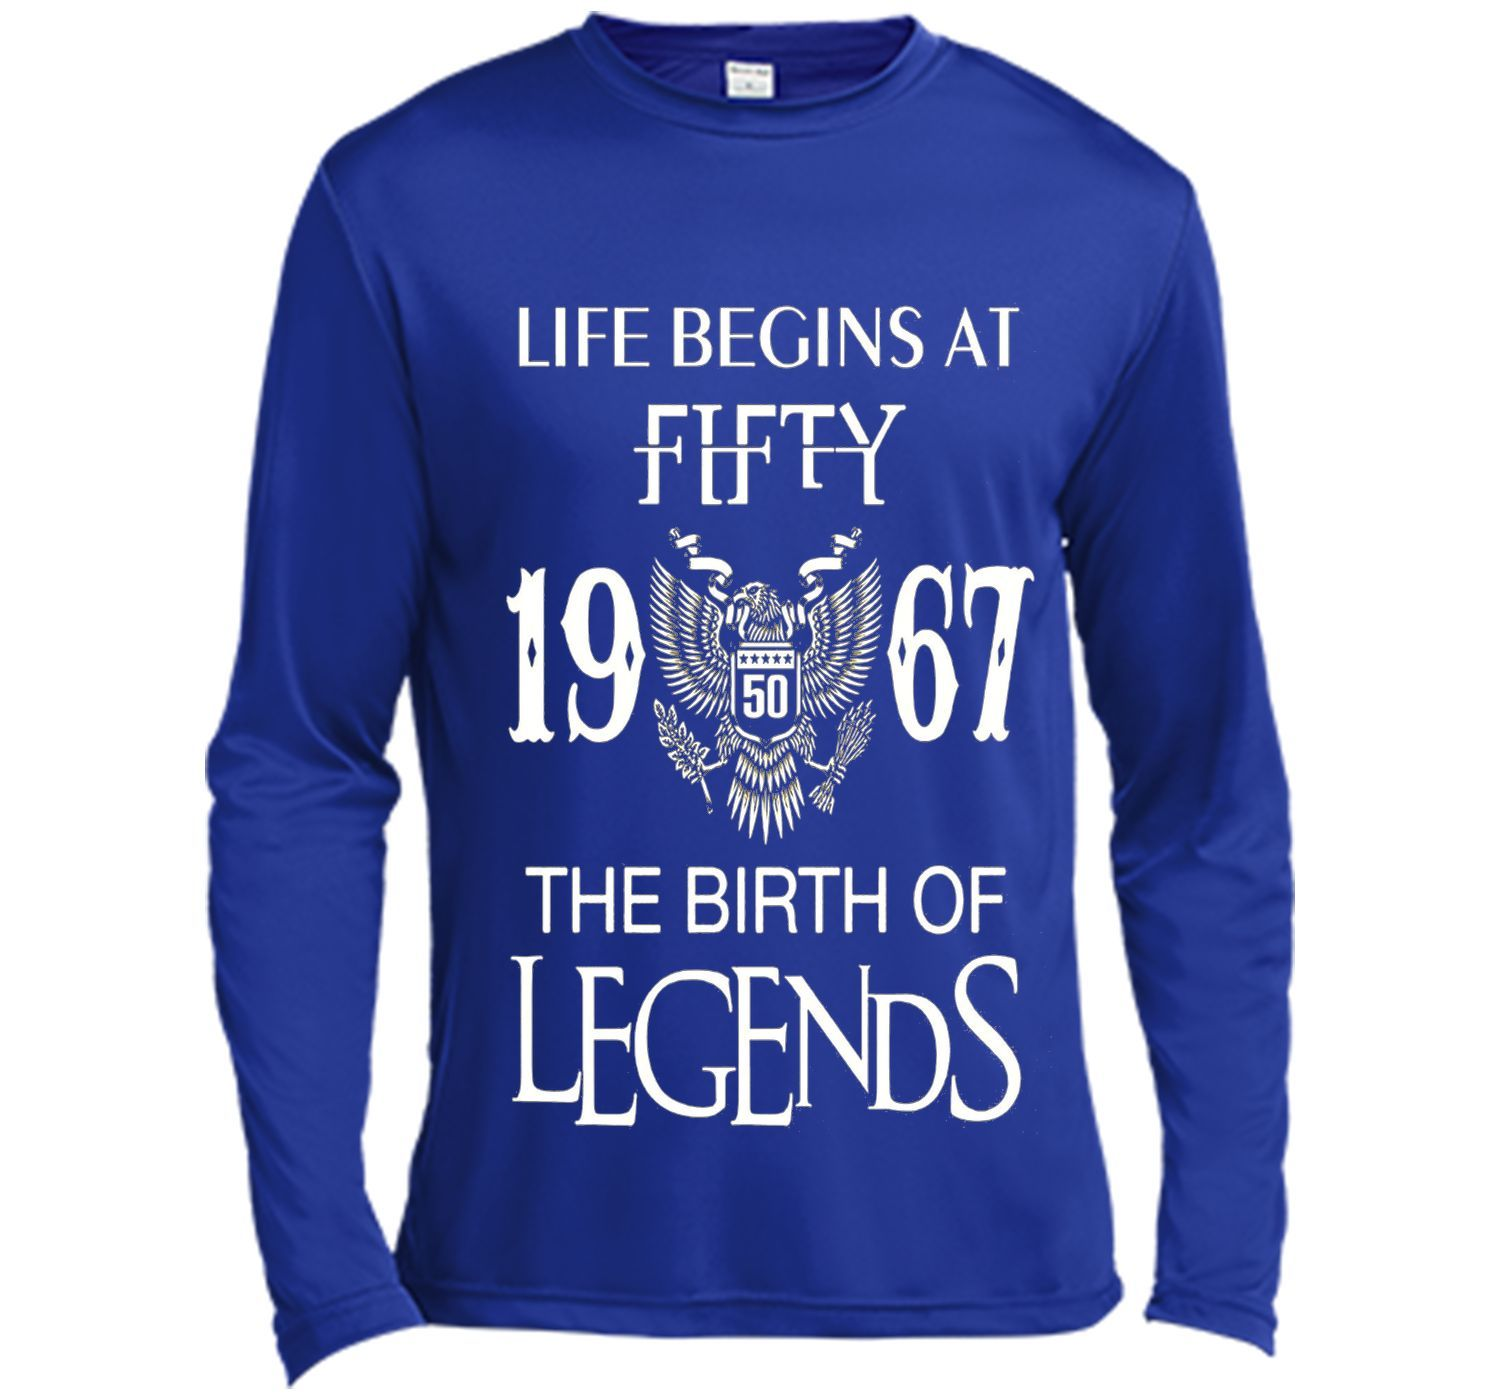 Life begins at Fifty - 1967 - The birth of legends cool shirt